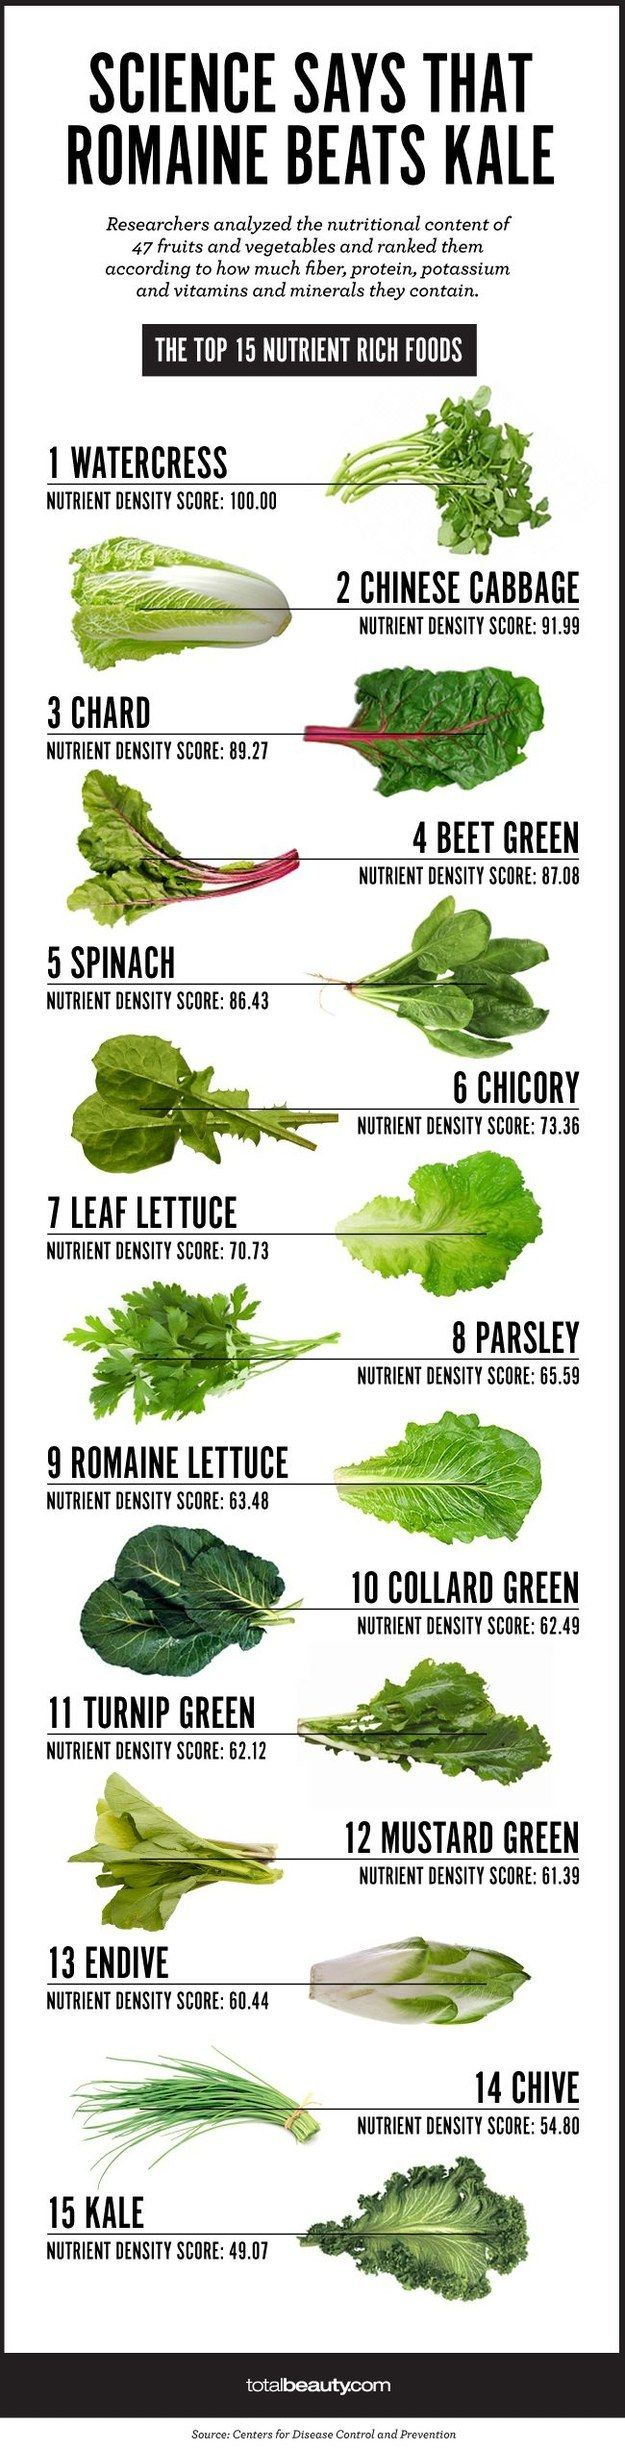 Romaine Beats Kale by totalbeauty: For choosing the best veggies. Yay napa! #Infographic #Nutrient_Dense_Greens